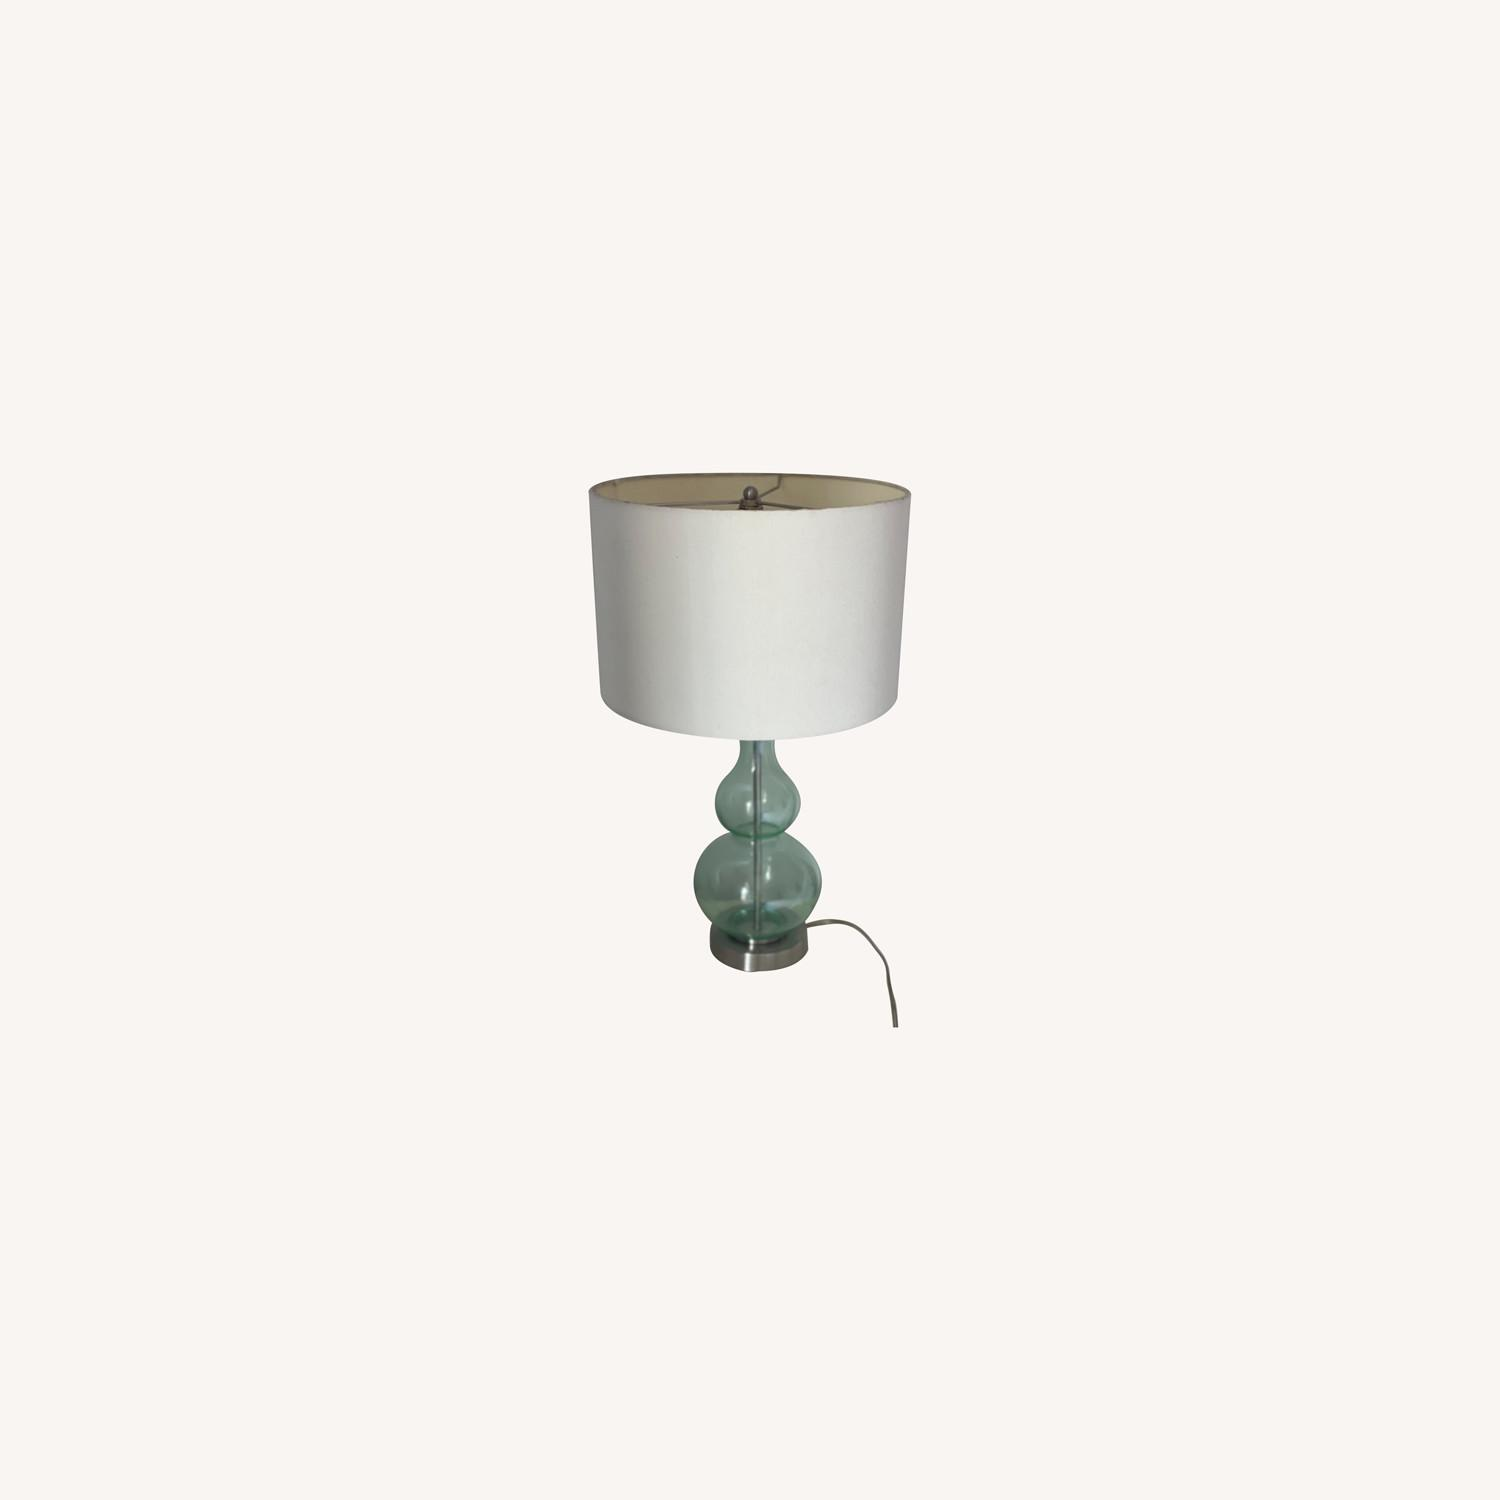 2 Green Glass Lamps - image-0